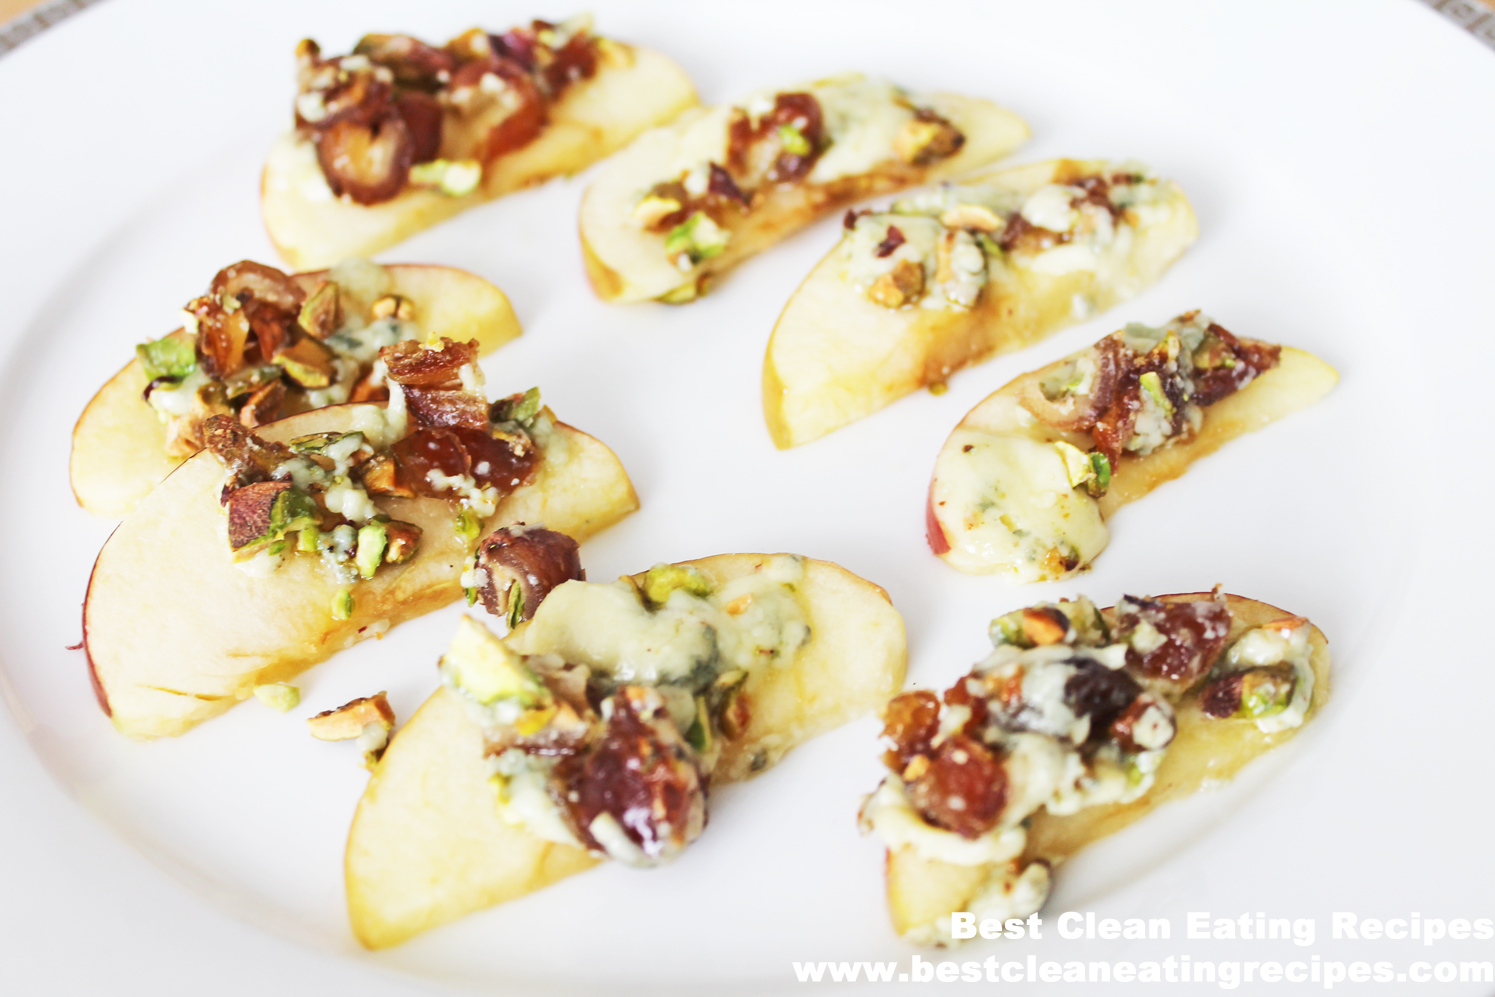 Clean Eating Recipe – Baked Apple with Blue Cheese, Date and Pistachios